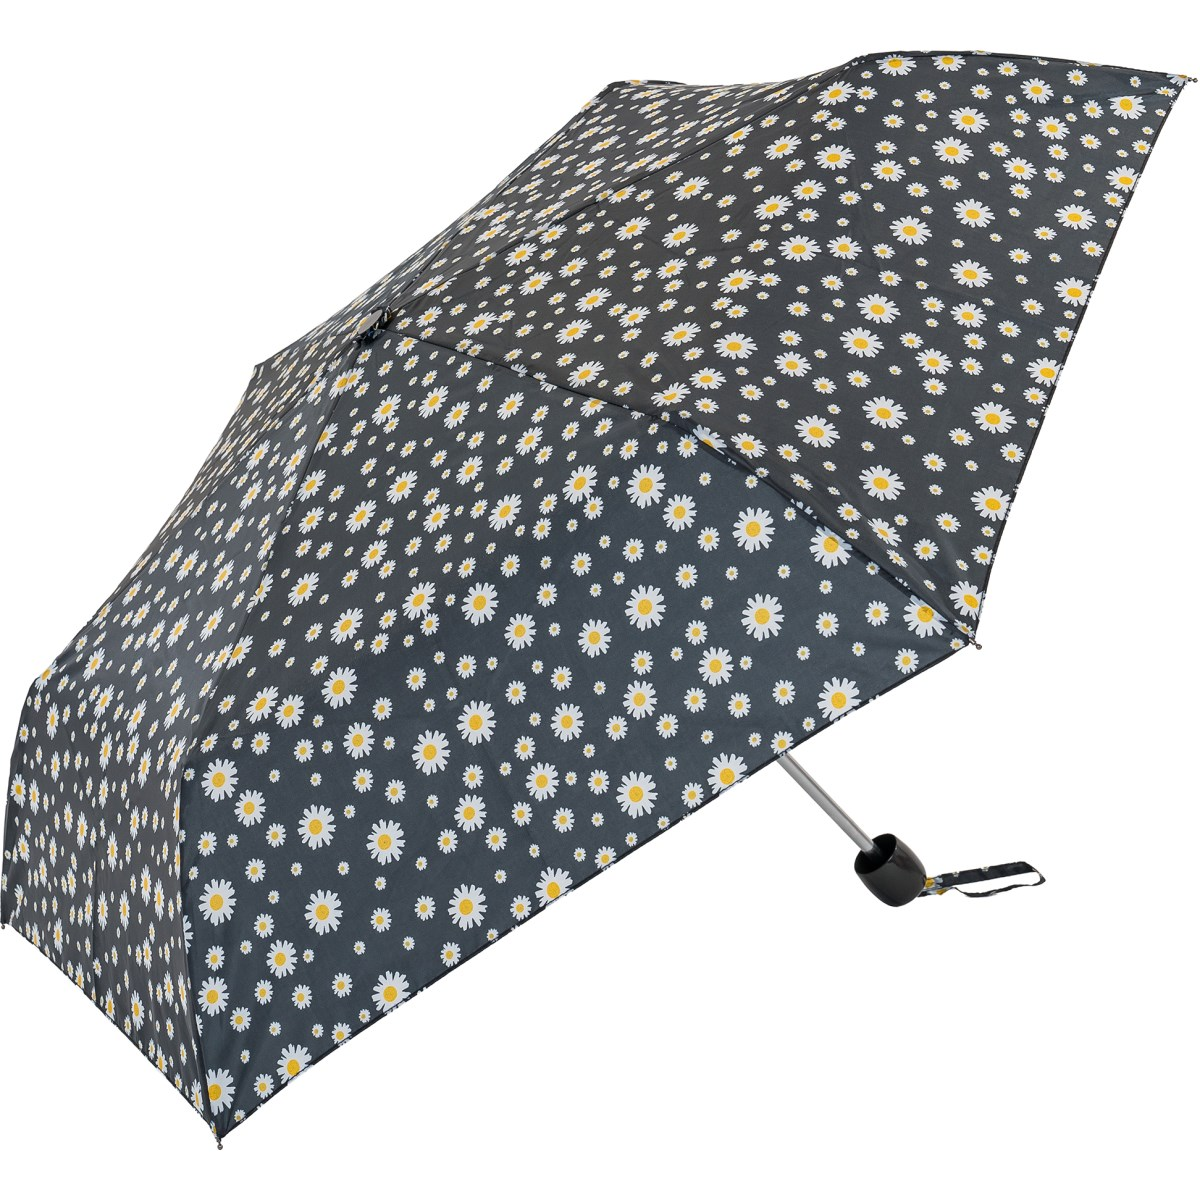 Black Daisy Print Compact Umbrella  (31105)